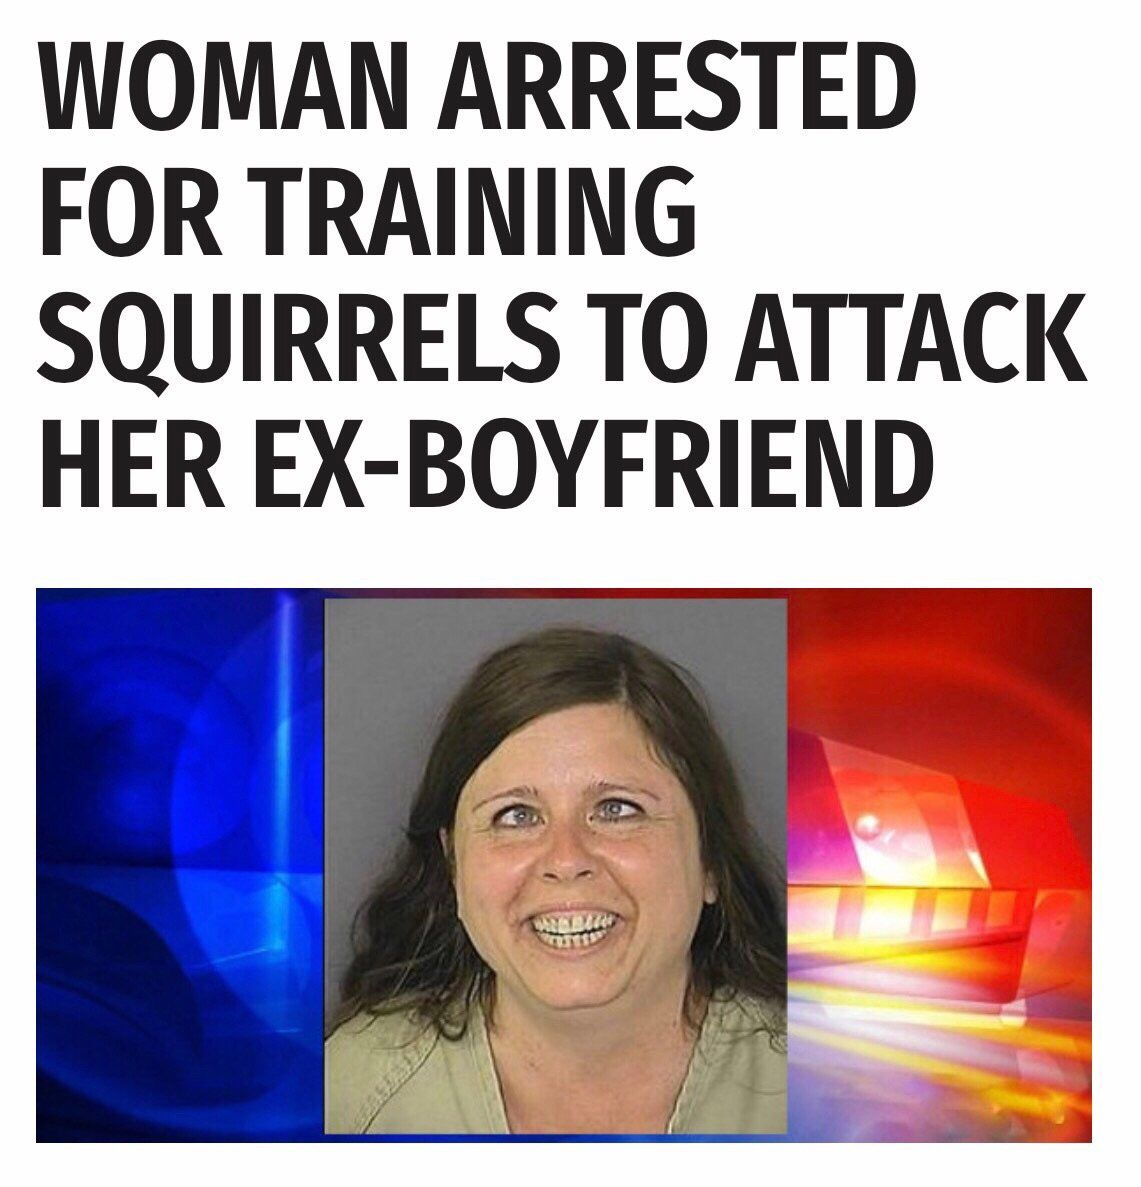 To woman trains attack squirrels Fake News: